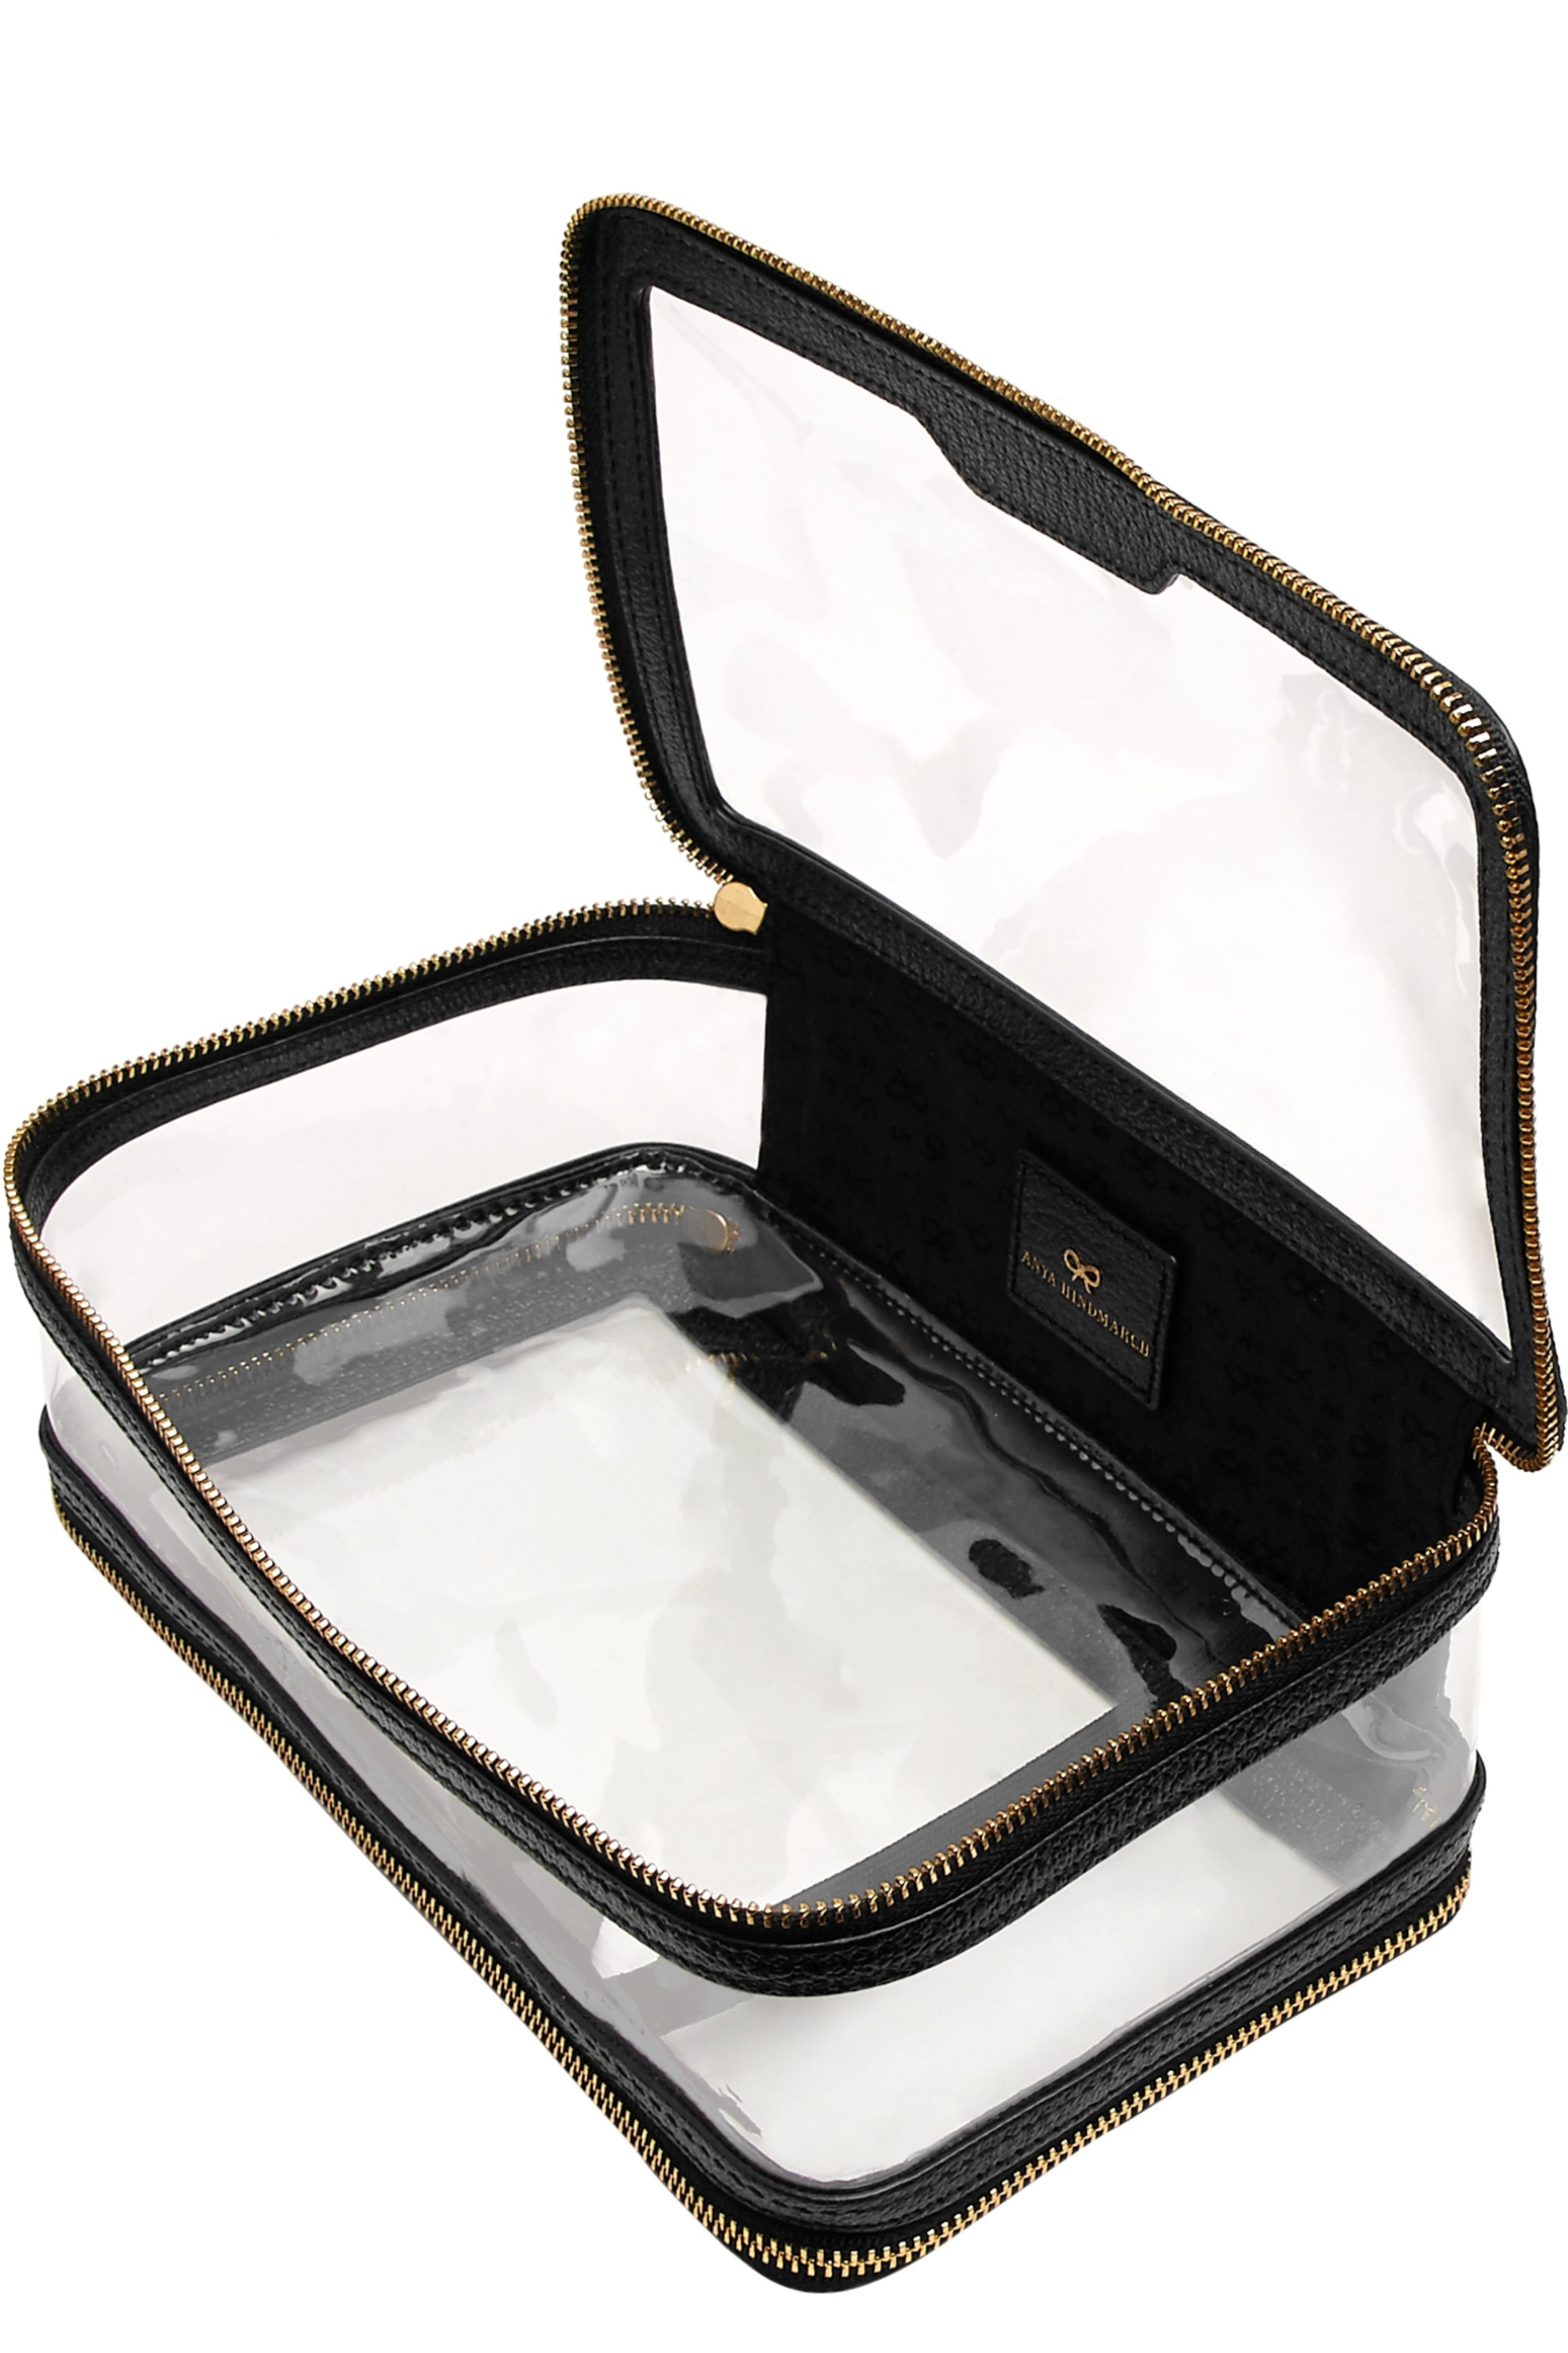 Anya Hindmarch Inflight leather-trimmed Perspex cosmetics case